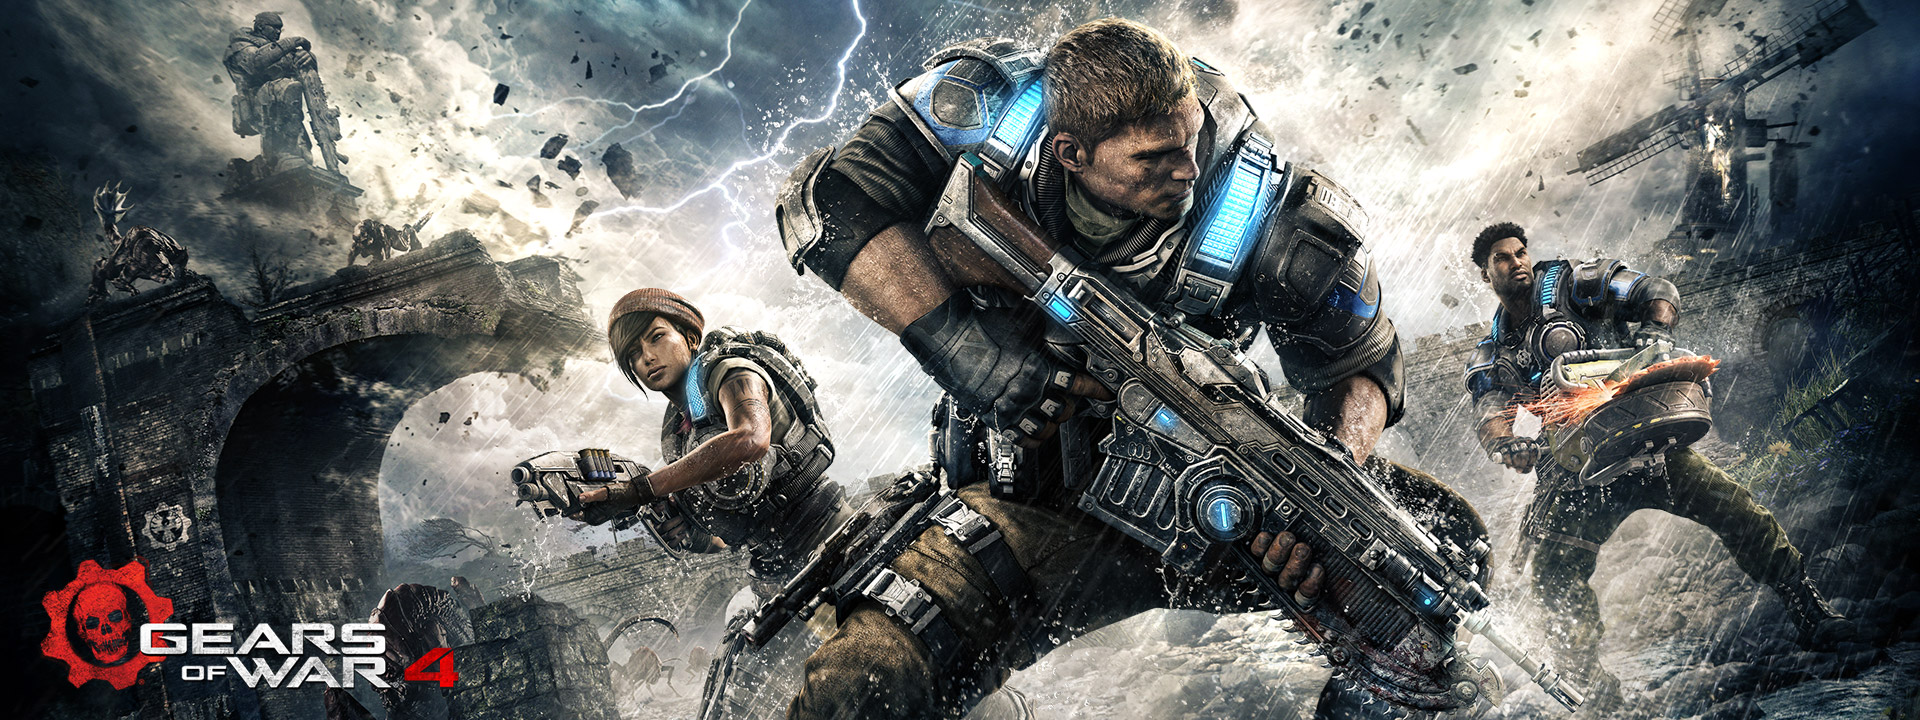 Review: Gears of War 4 – Microsofts Chainsaw Massacre